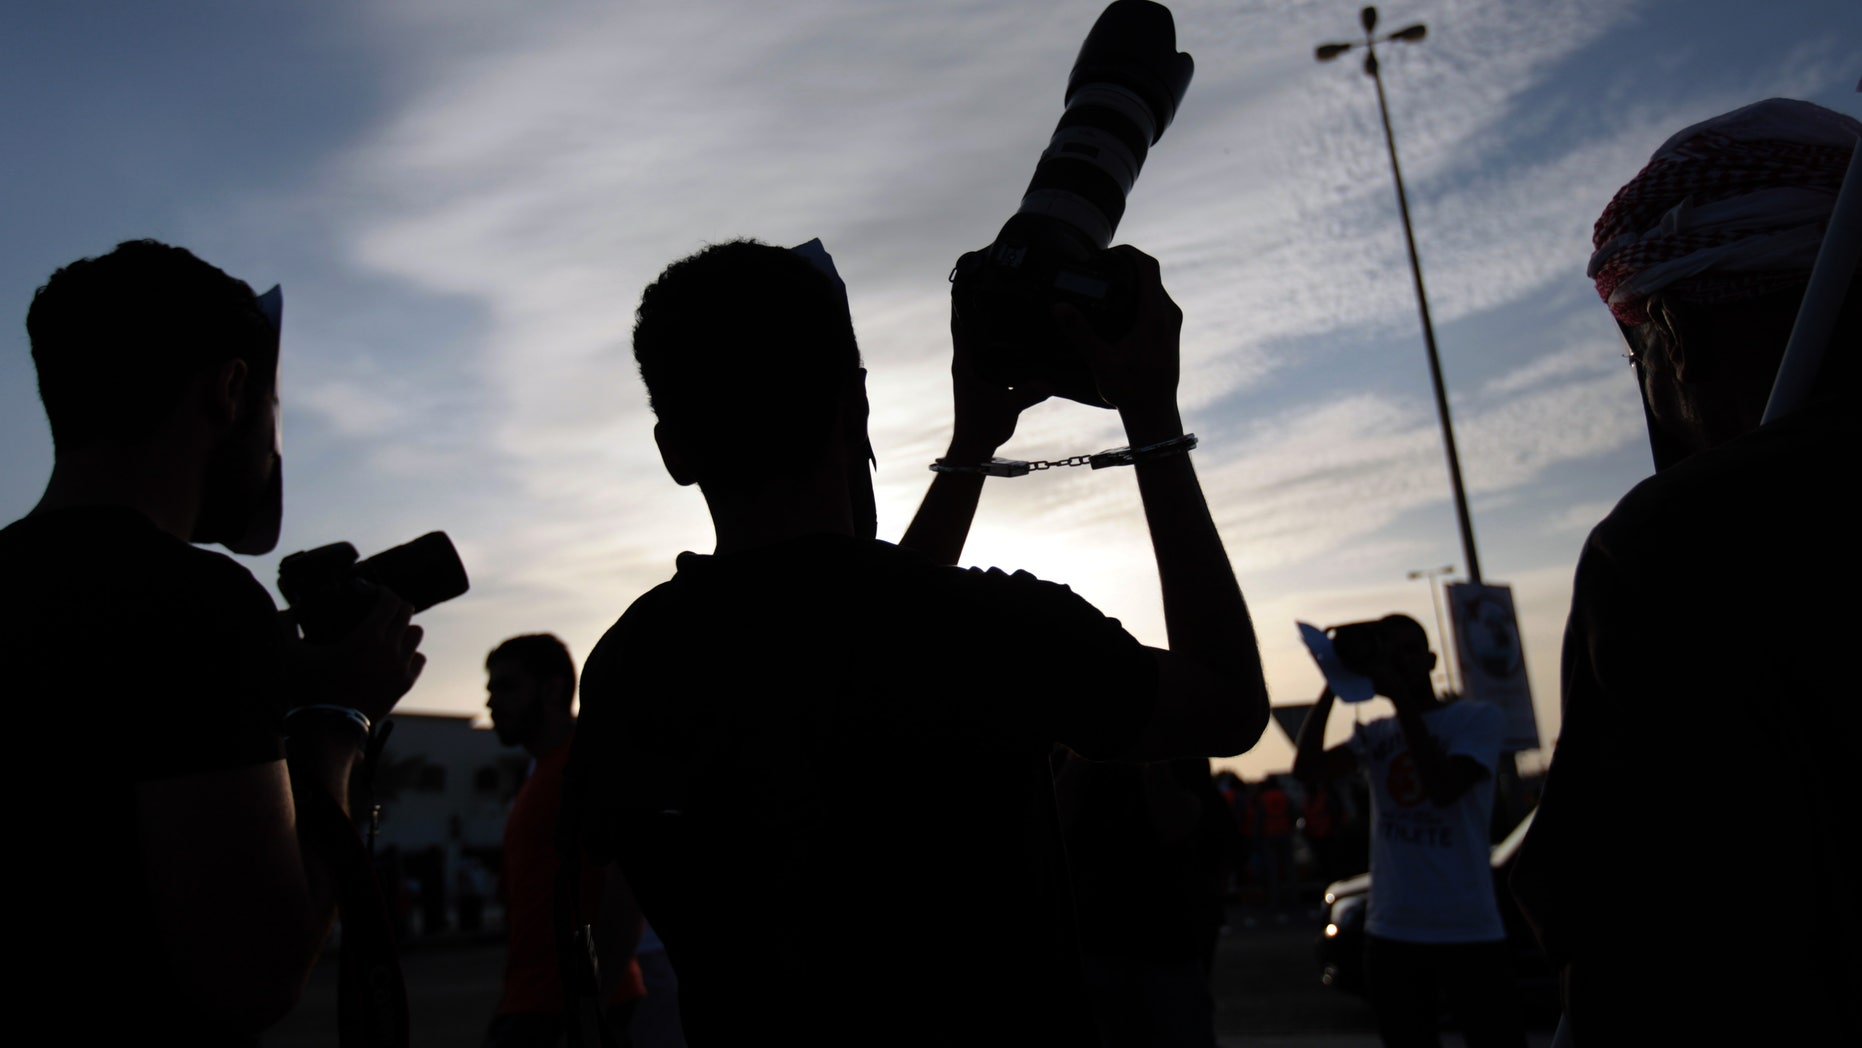 Masked Bahraini anti-government protesters wearing handcuffs hold cameras up to show support for jailed photographers during a march in Saar, Bahrain, on Friday, Dec. 13, 2013. Thousands participated in the march organized by opposition parties to mark 1,000 days since the pro-democracy uprising began in the Gulf island kingdom. As the peaceful march dispersed, a group of masked youths confronted riot police nearby, igniting clashes. (AP Photo/Hasan Jamali)